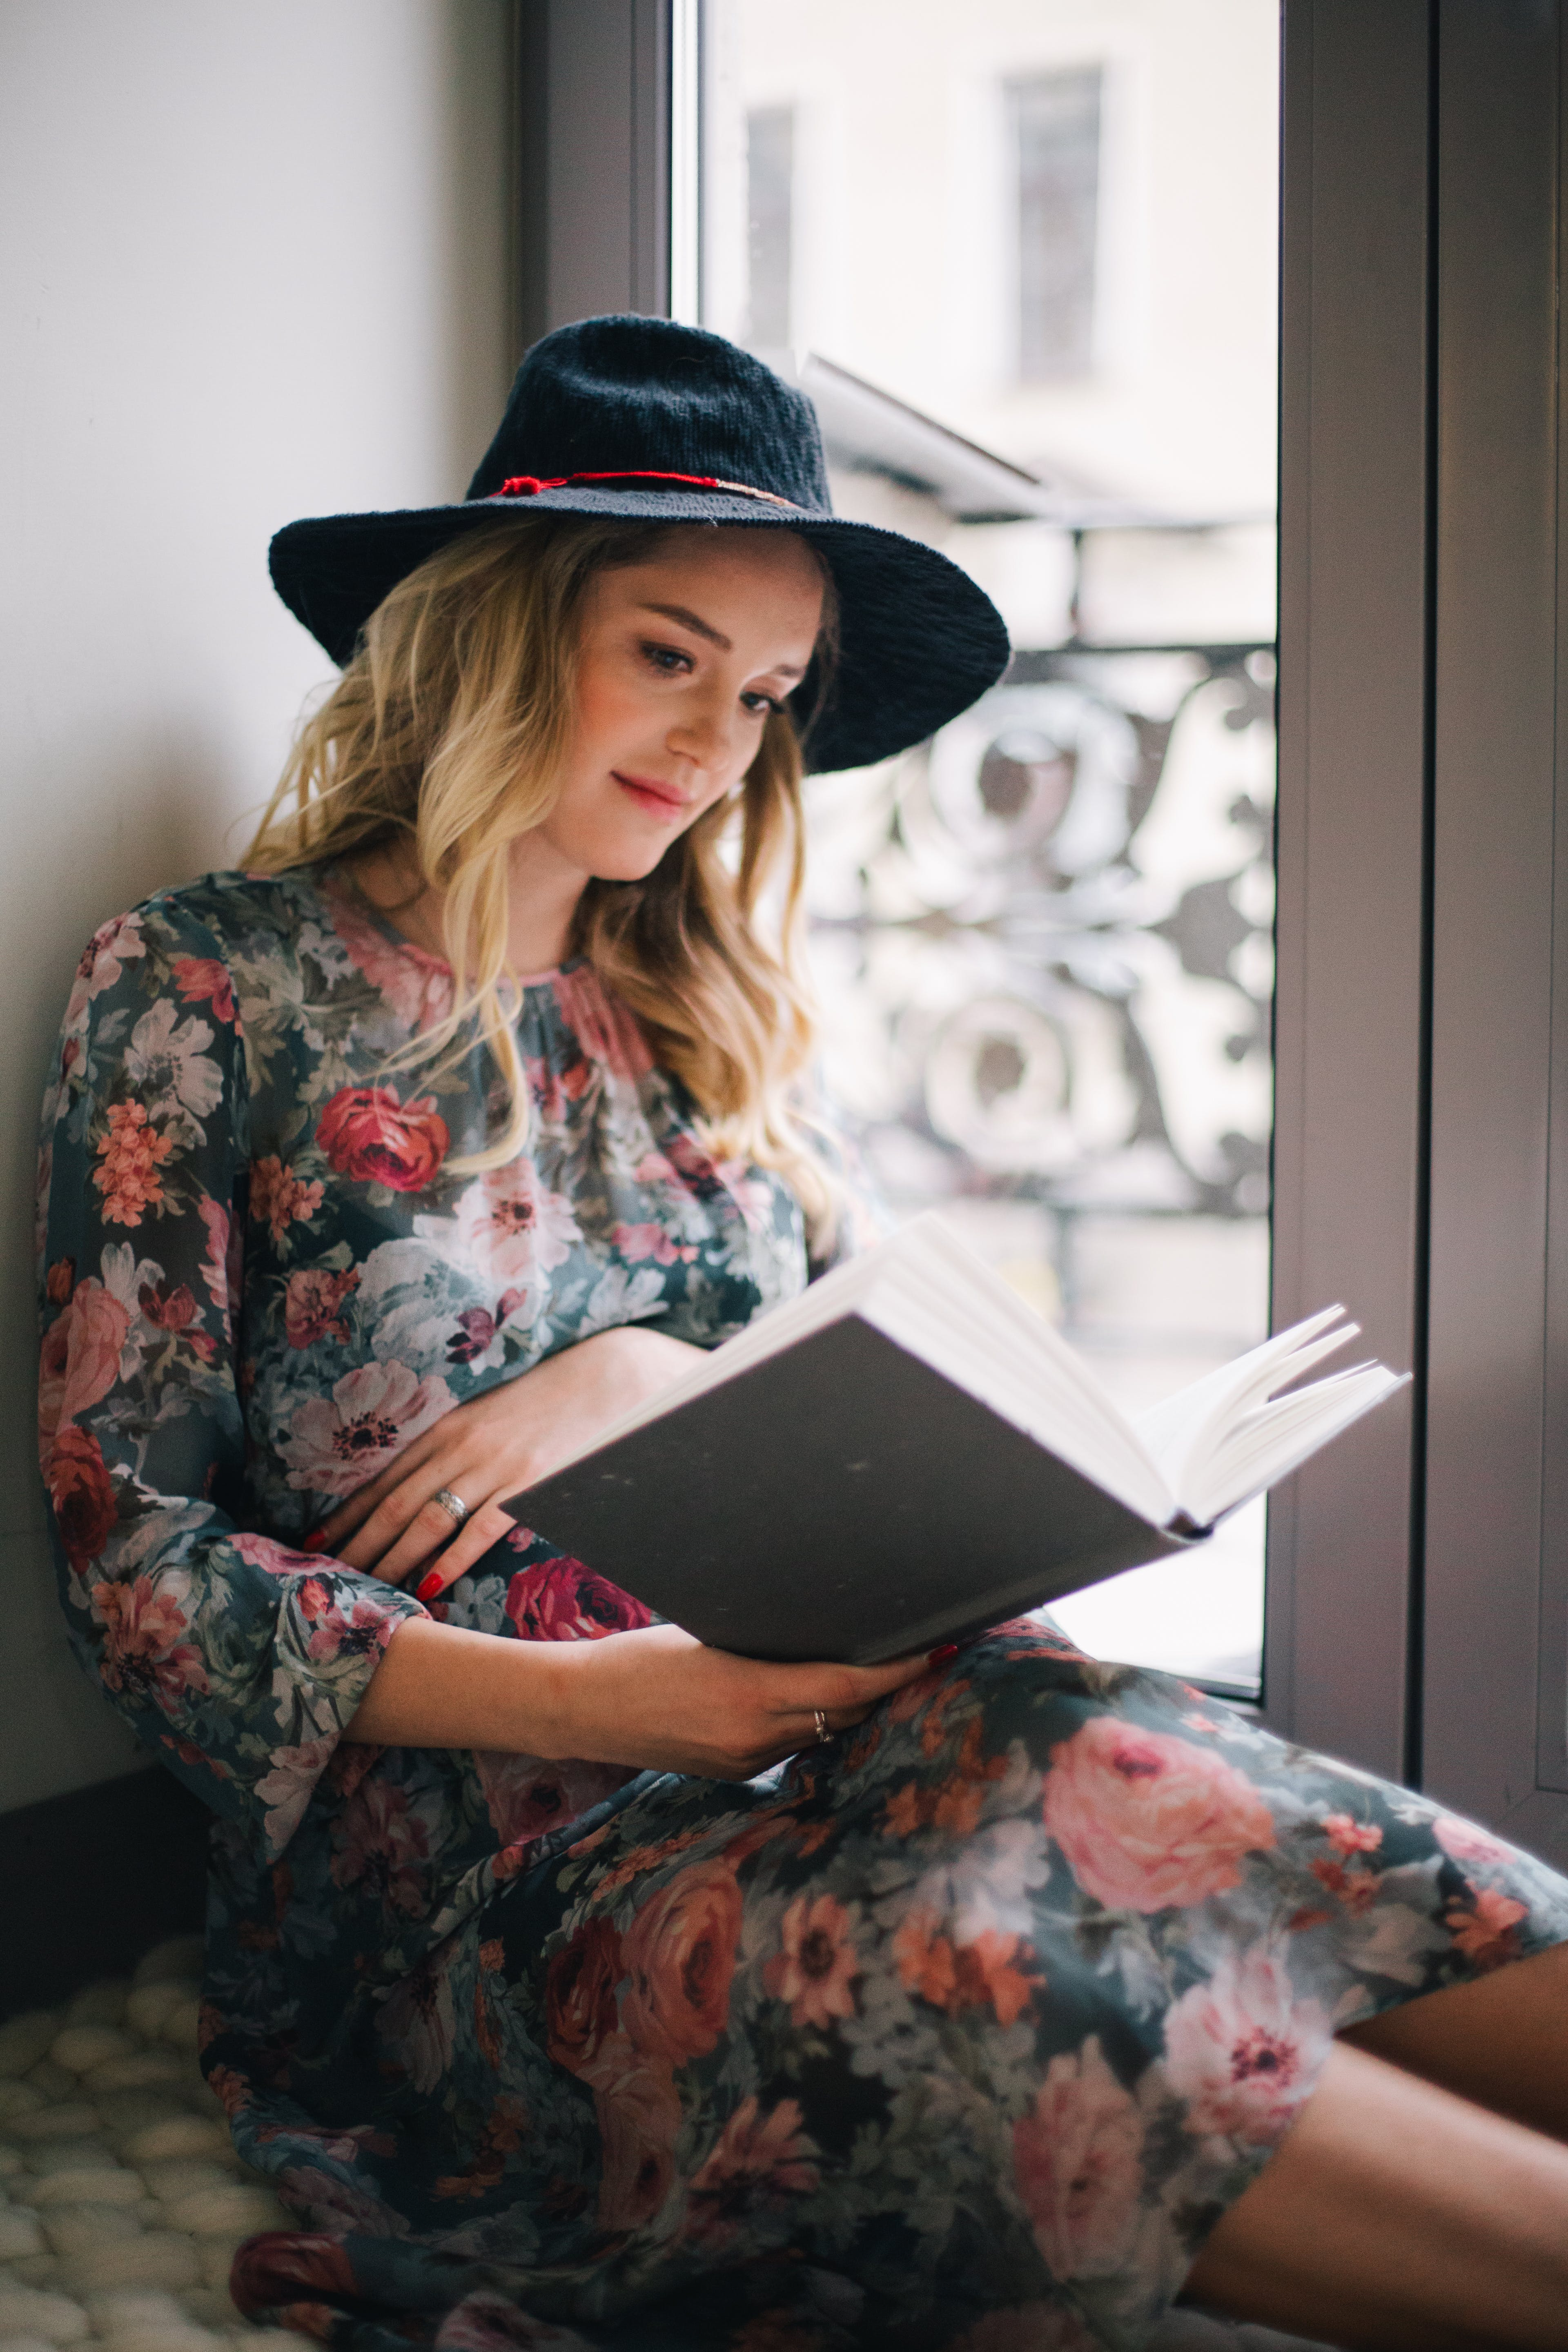 Pregnant Woman Wearing Green, Red, and White Floral Dress Reading a Book Near Window